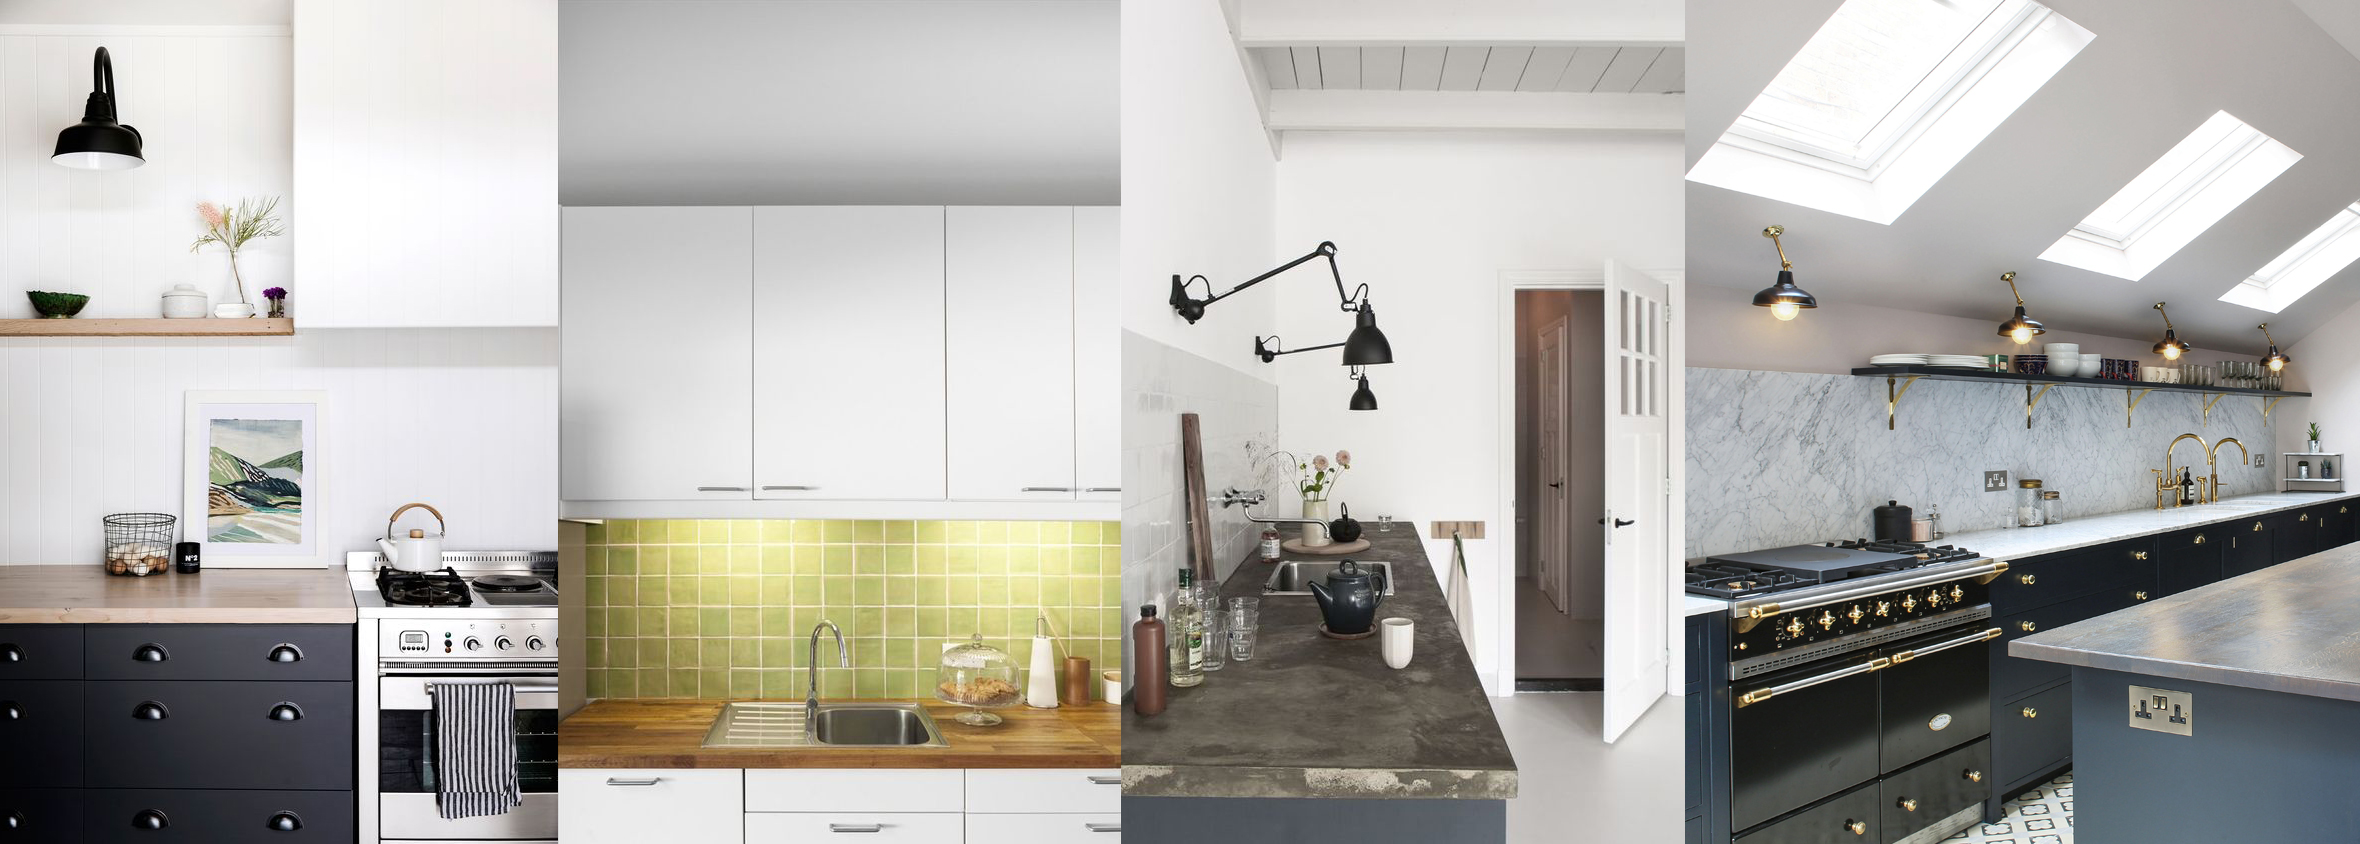 Kitchen Lighting - Task Lighting Inspiration